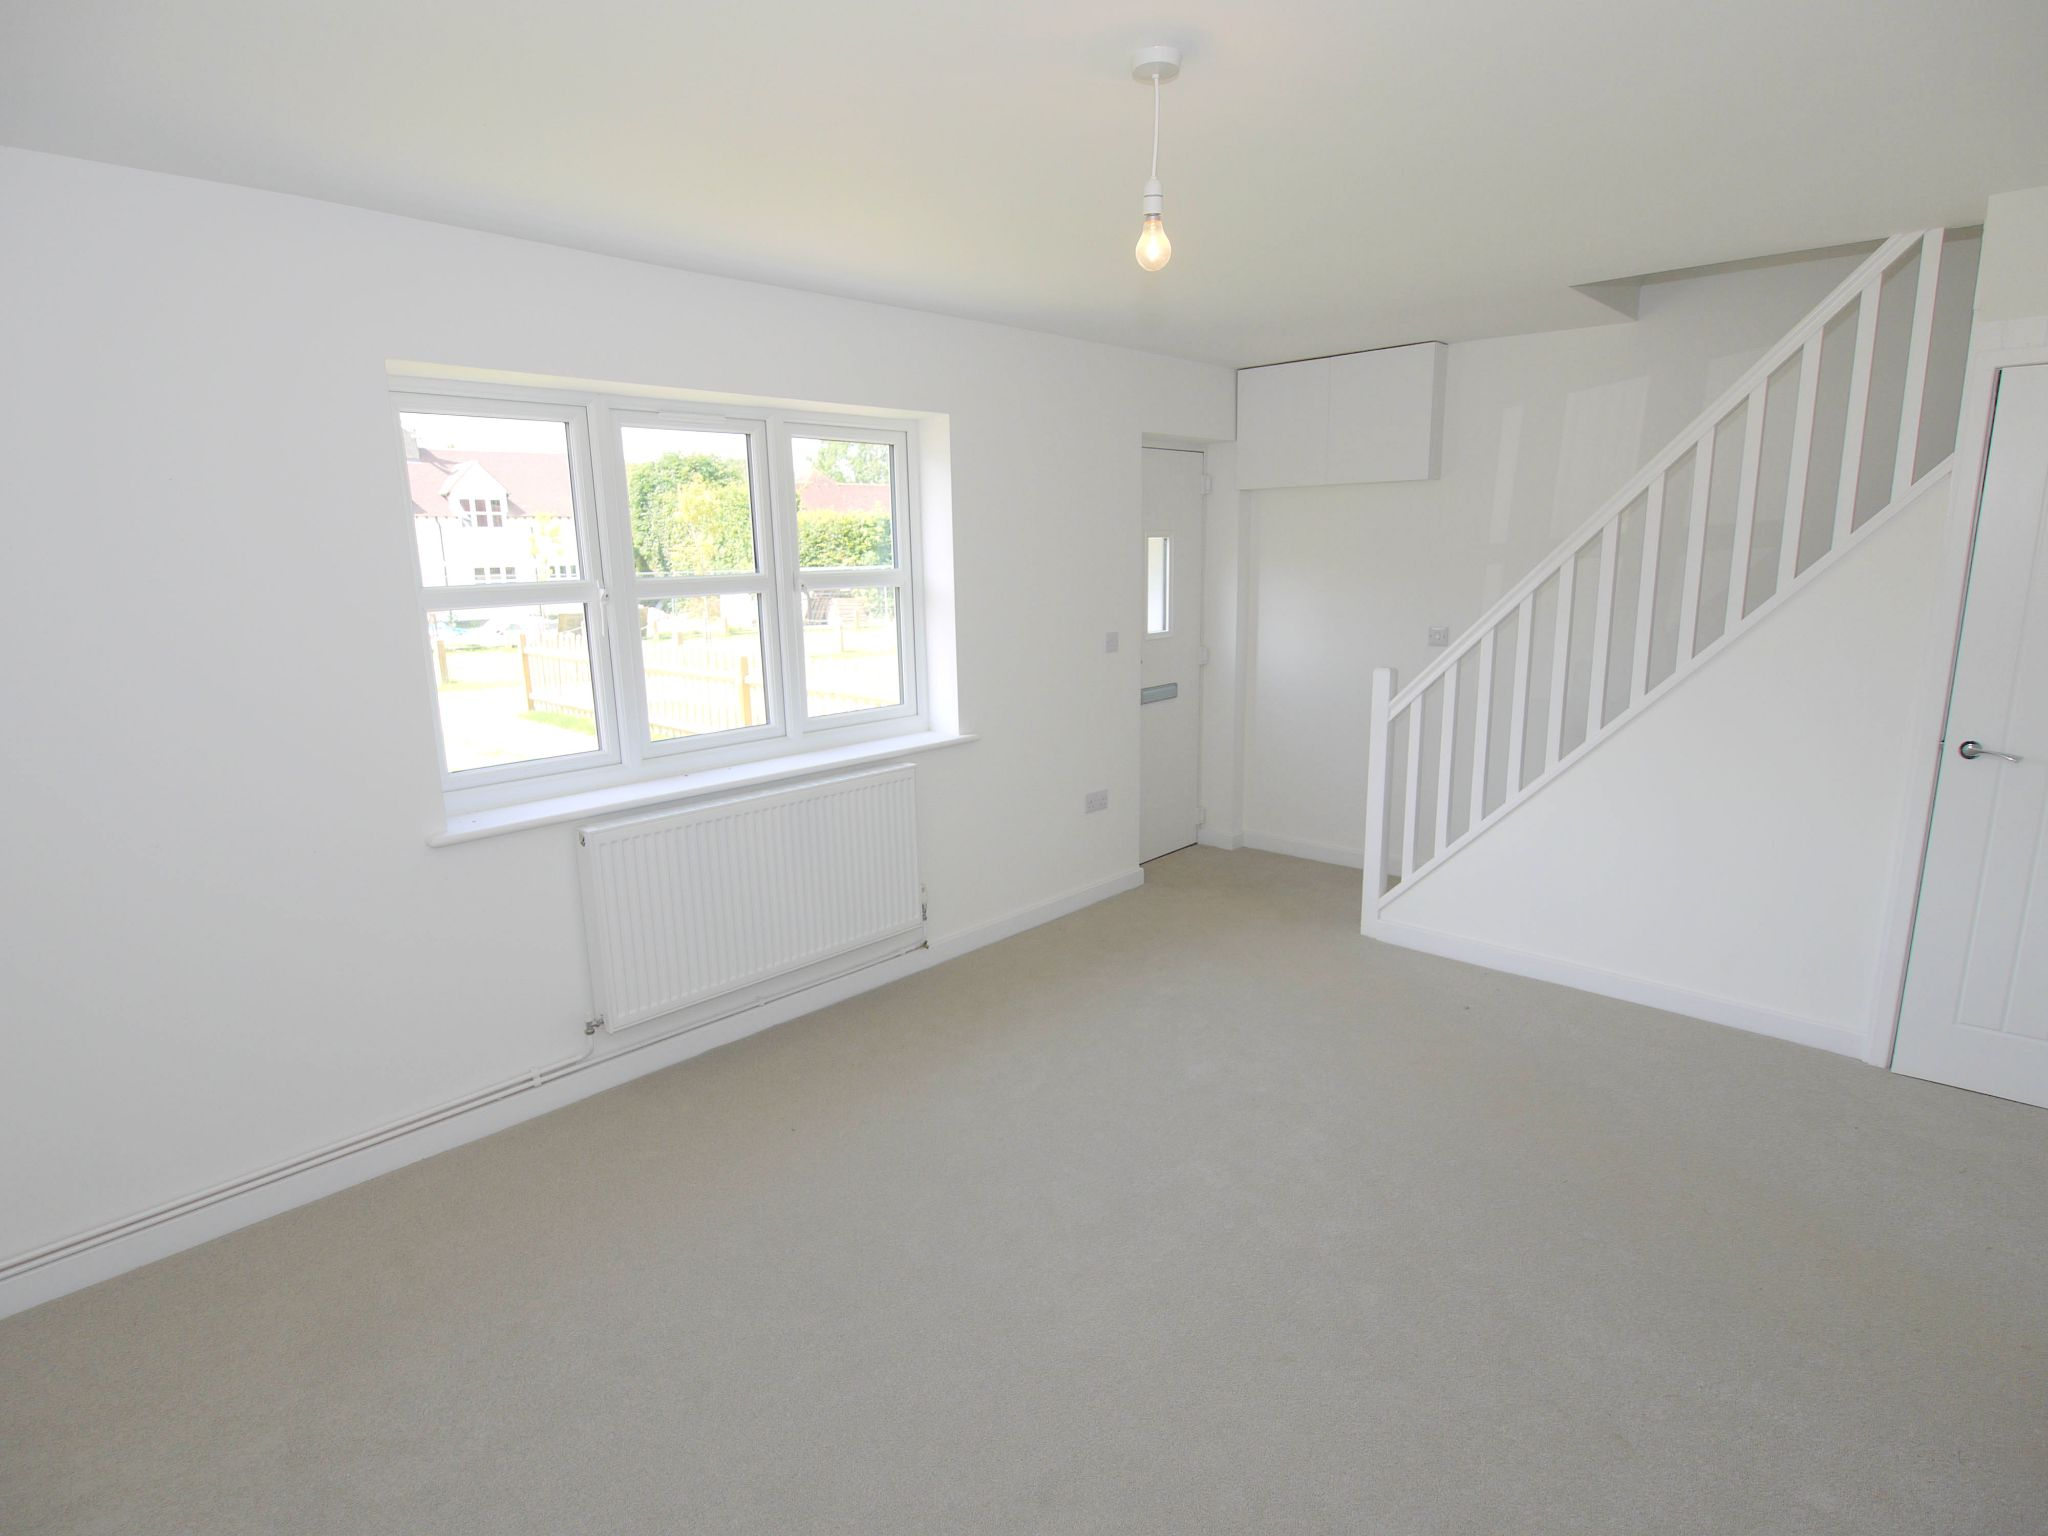 3 bedroom end terraced house Sold in Tonbridge - Photograph 5